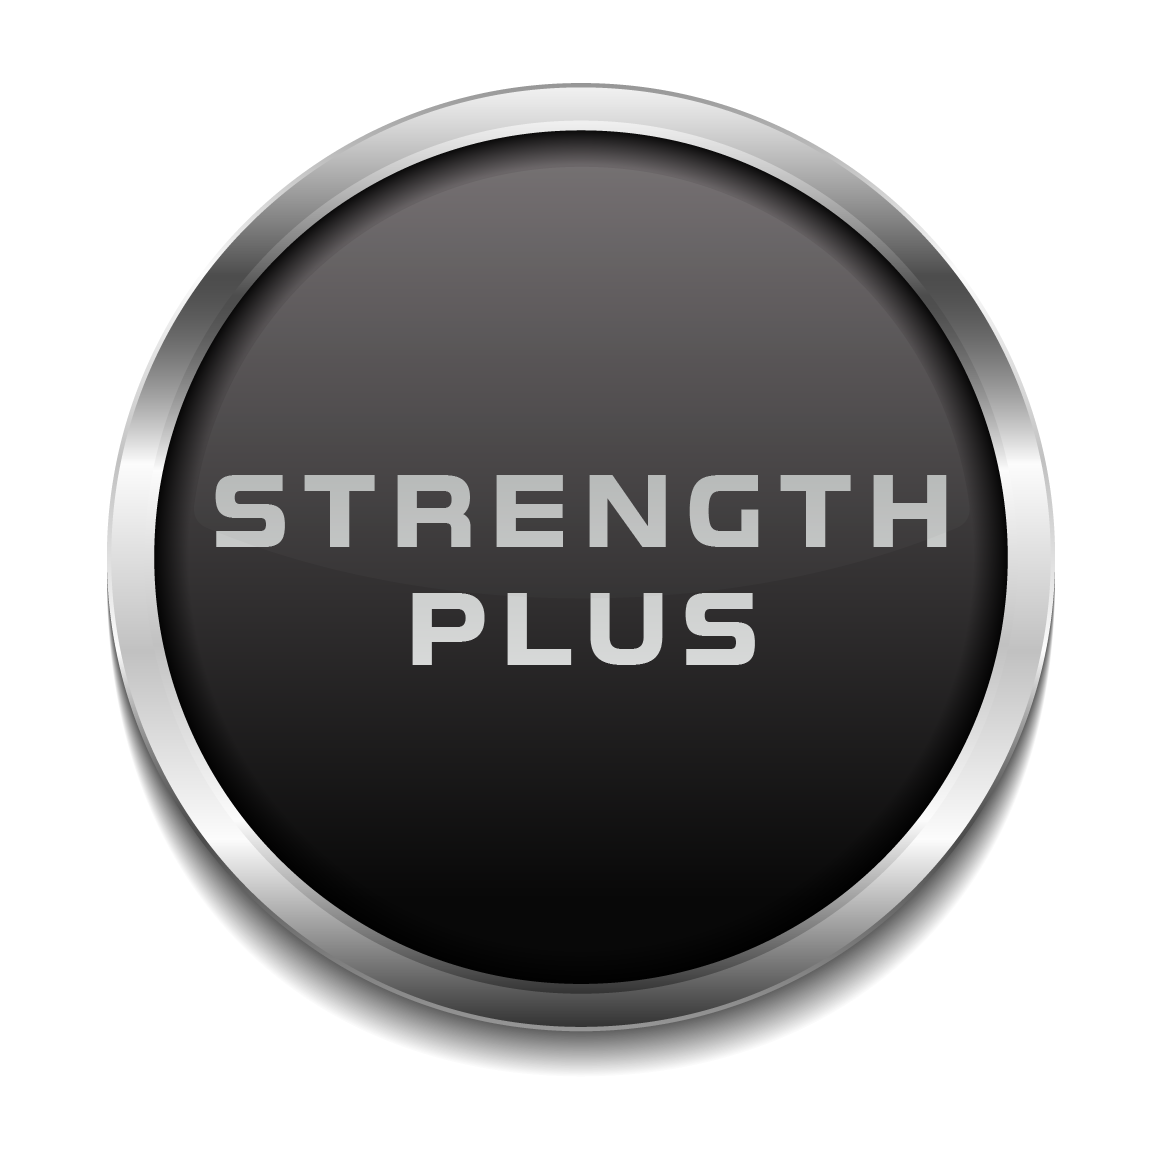 STRENGTHPLUS.png